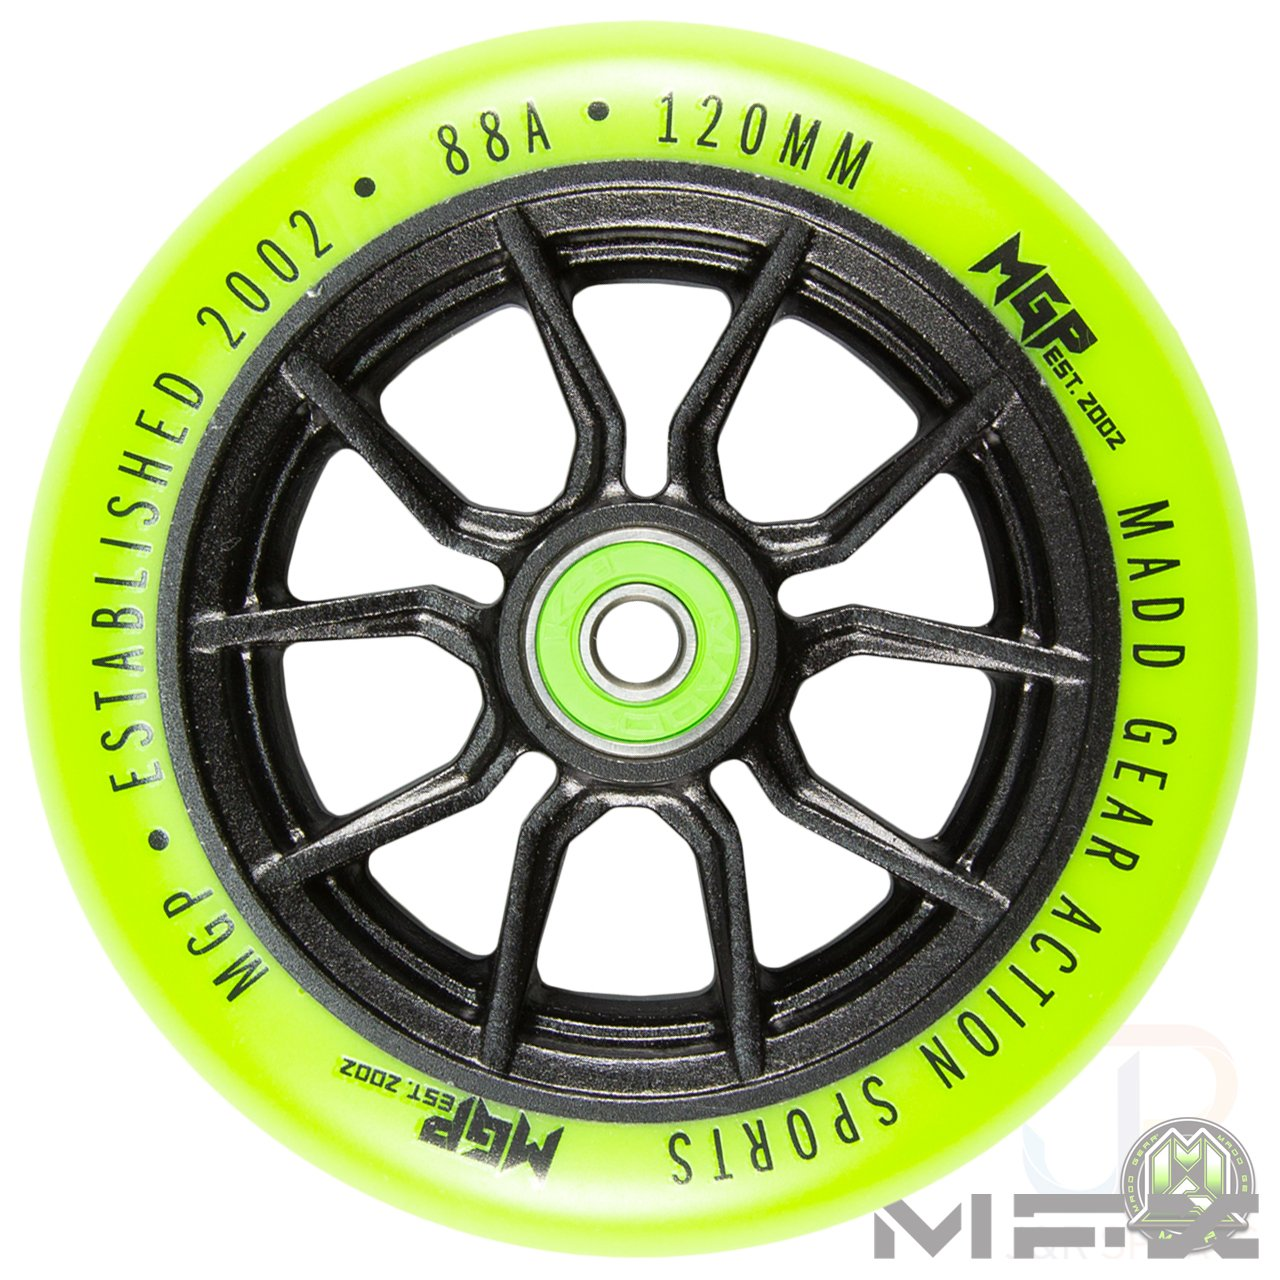 Madd Gear MFX Syndicate AR120 Core 120 mm Cœur en Métal ...